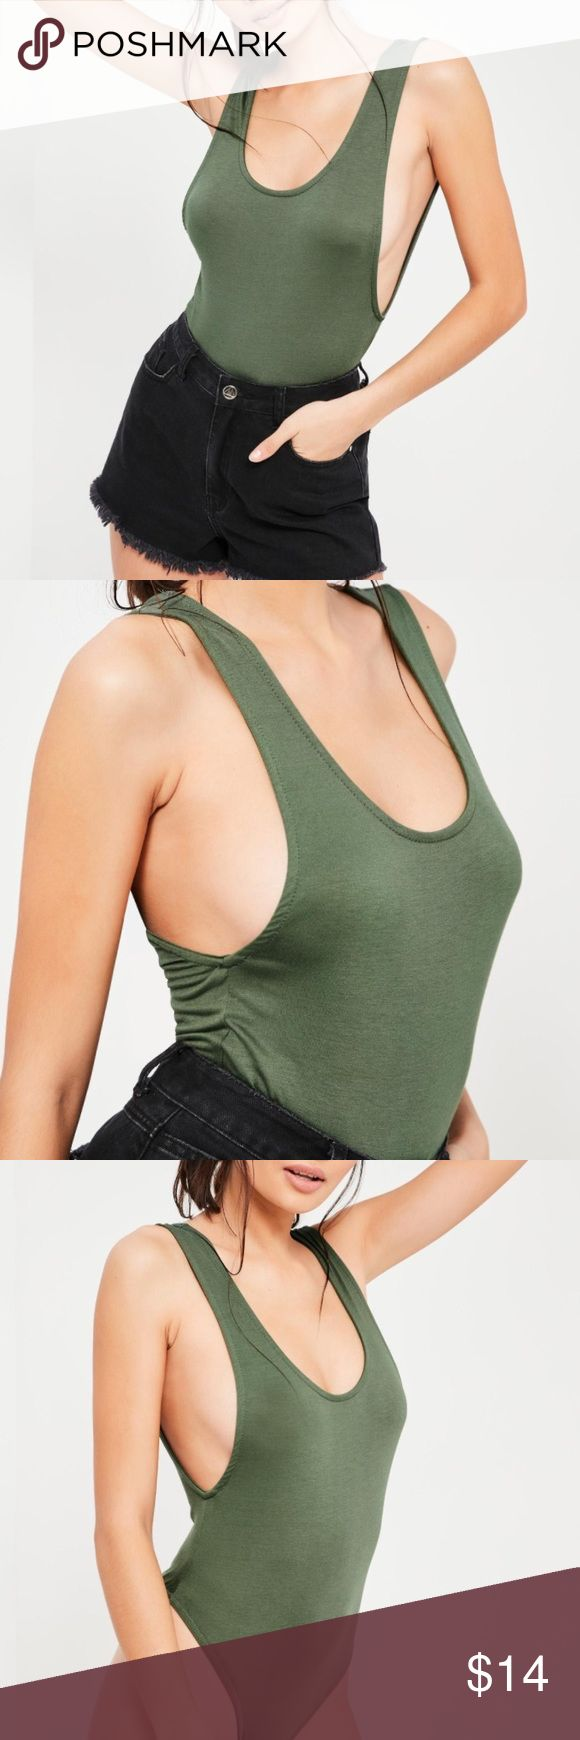 Missguided Khaki Scoop Back Bodysuit Like NEW! Khaki scoop back bodysuit from Missguided. Only worn once. Snap button closure. Missguided Tops